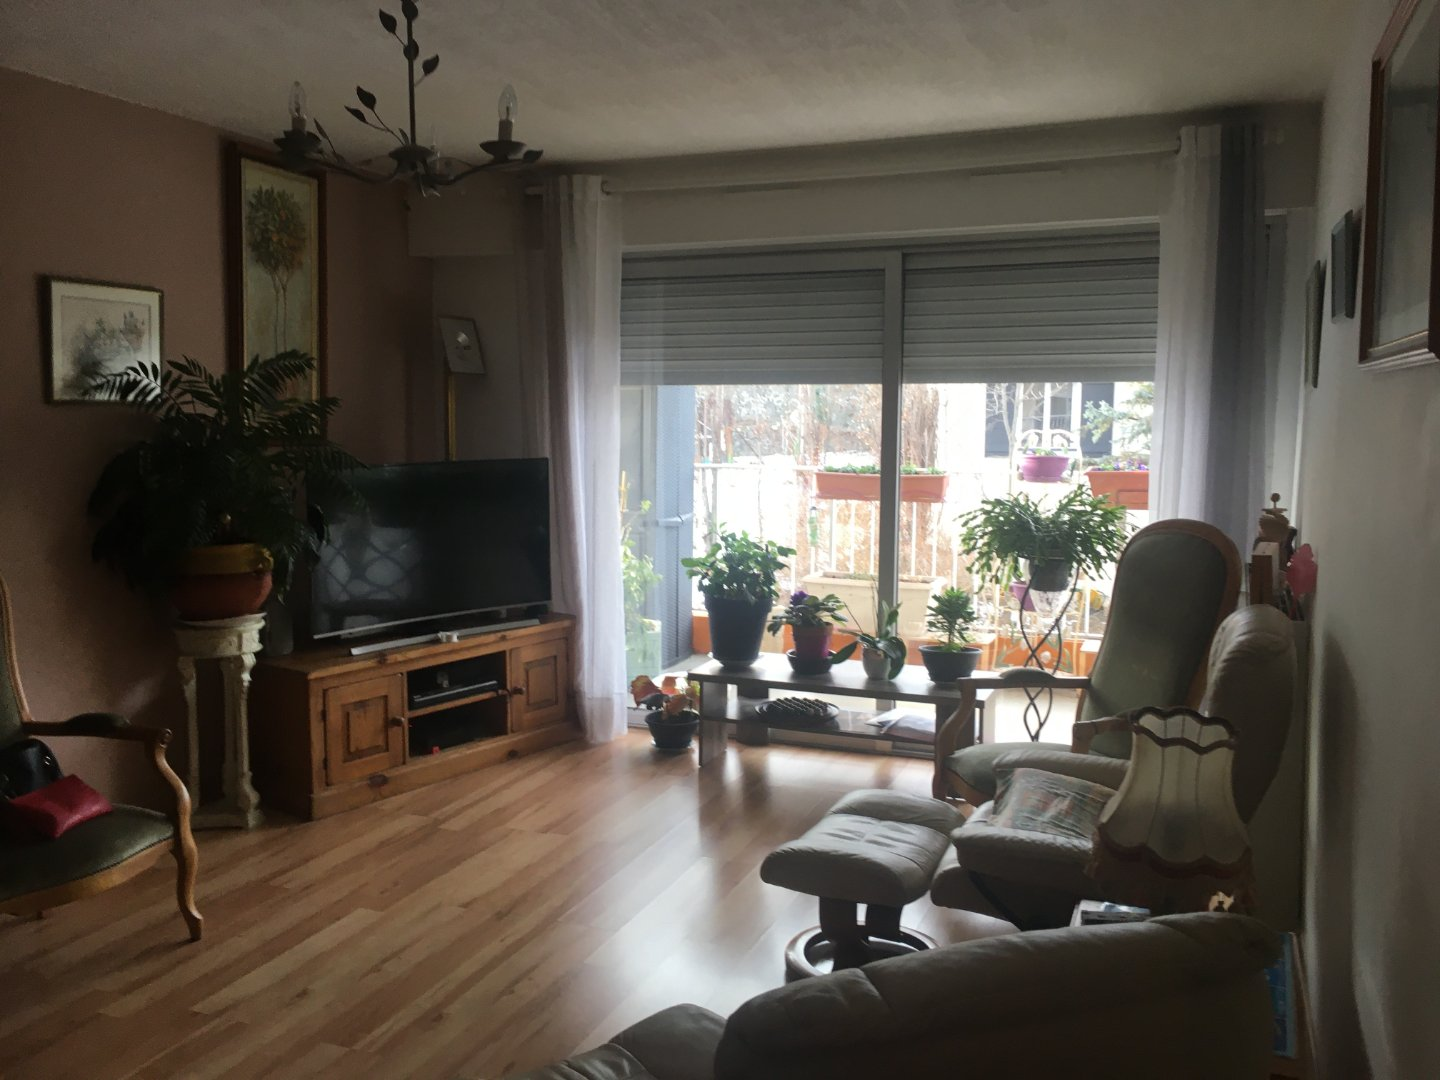 VIAGER OCCUPE A VENDRE - EMBRUN - 68,6 m2 - 120000 €